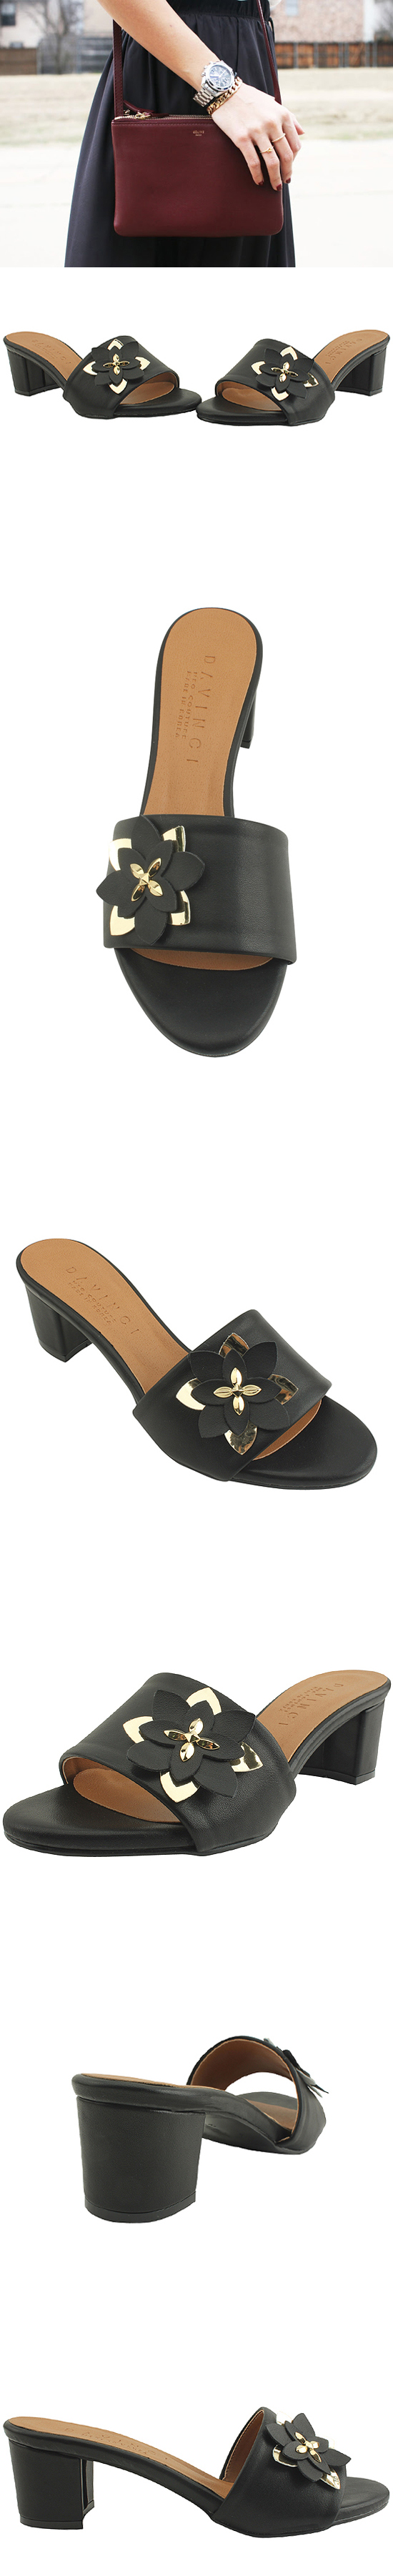 Flower mules slippers black